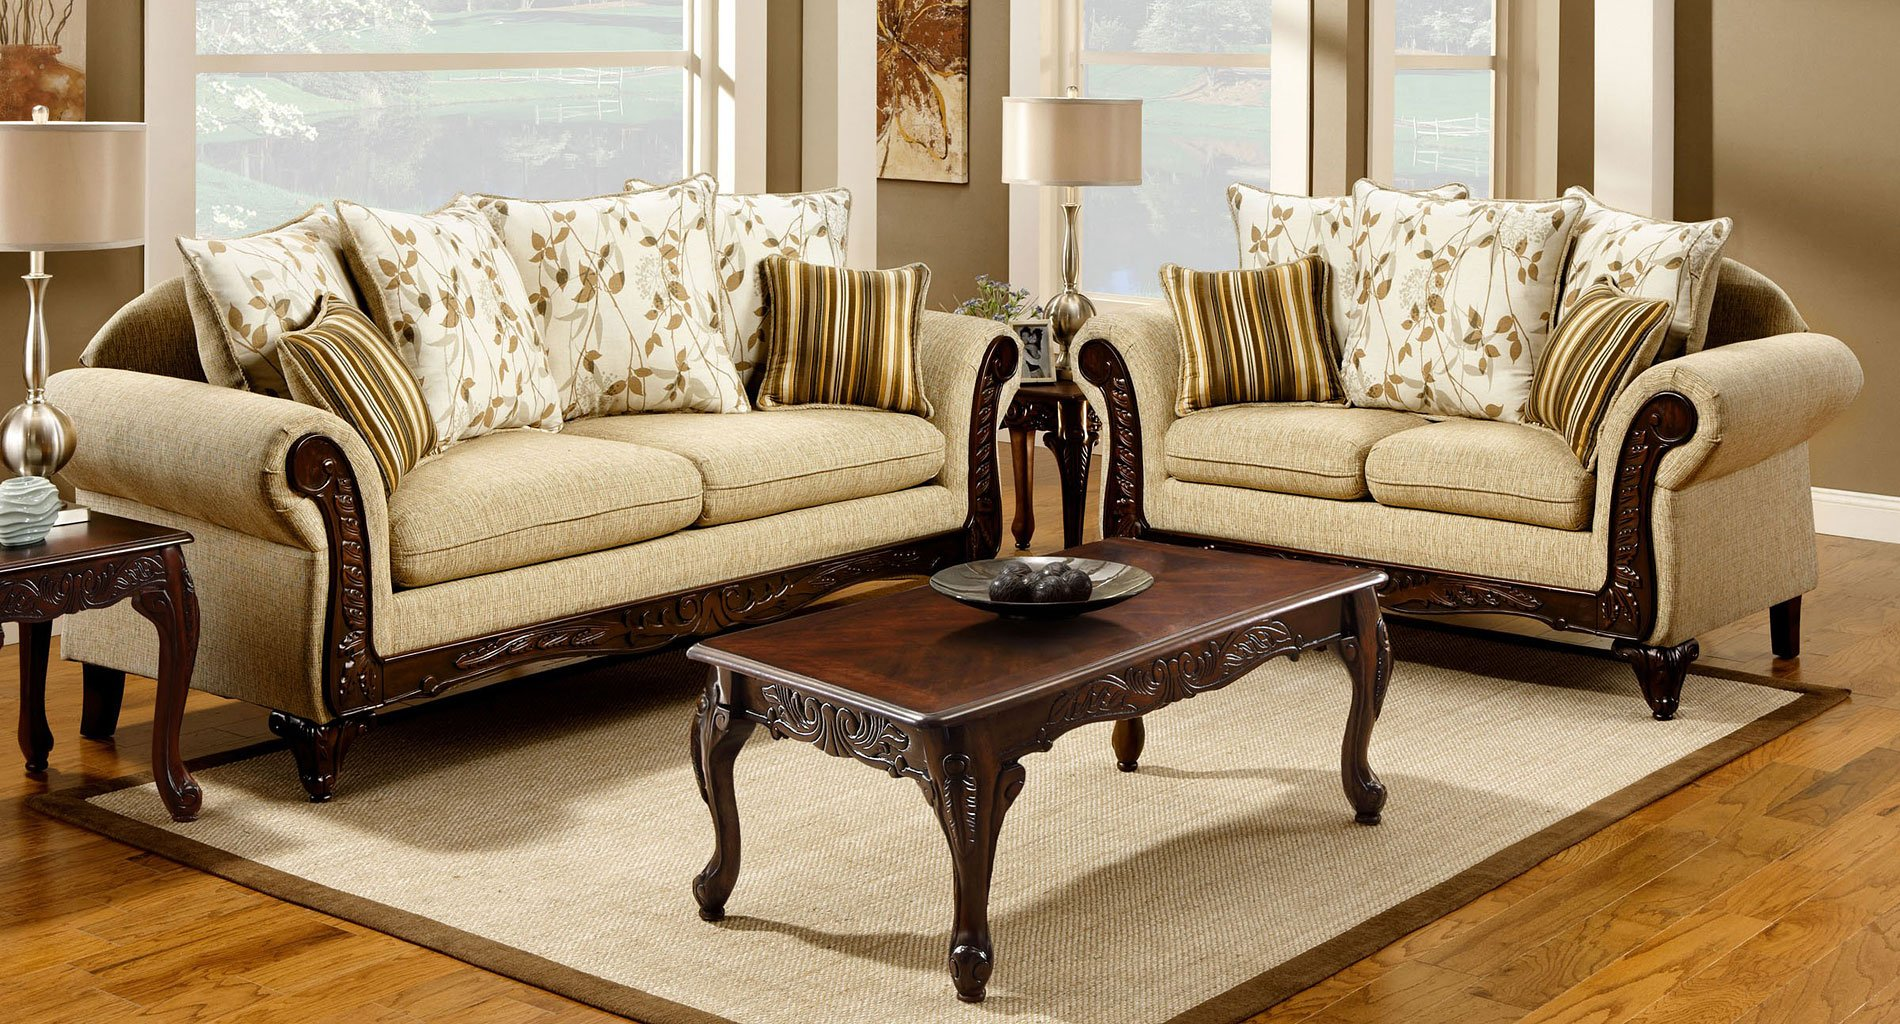 Doncaster Living Room Set (Tan)